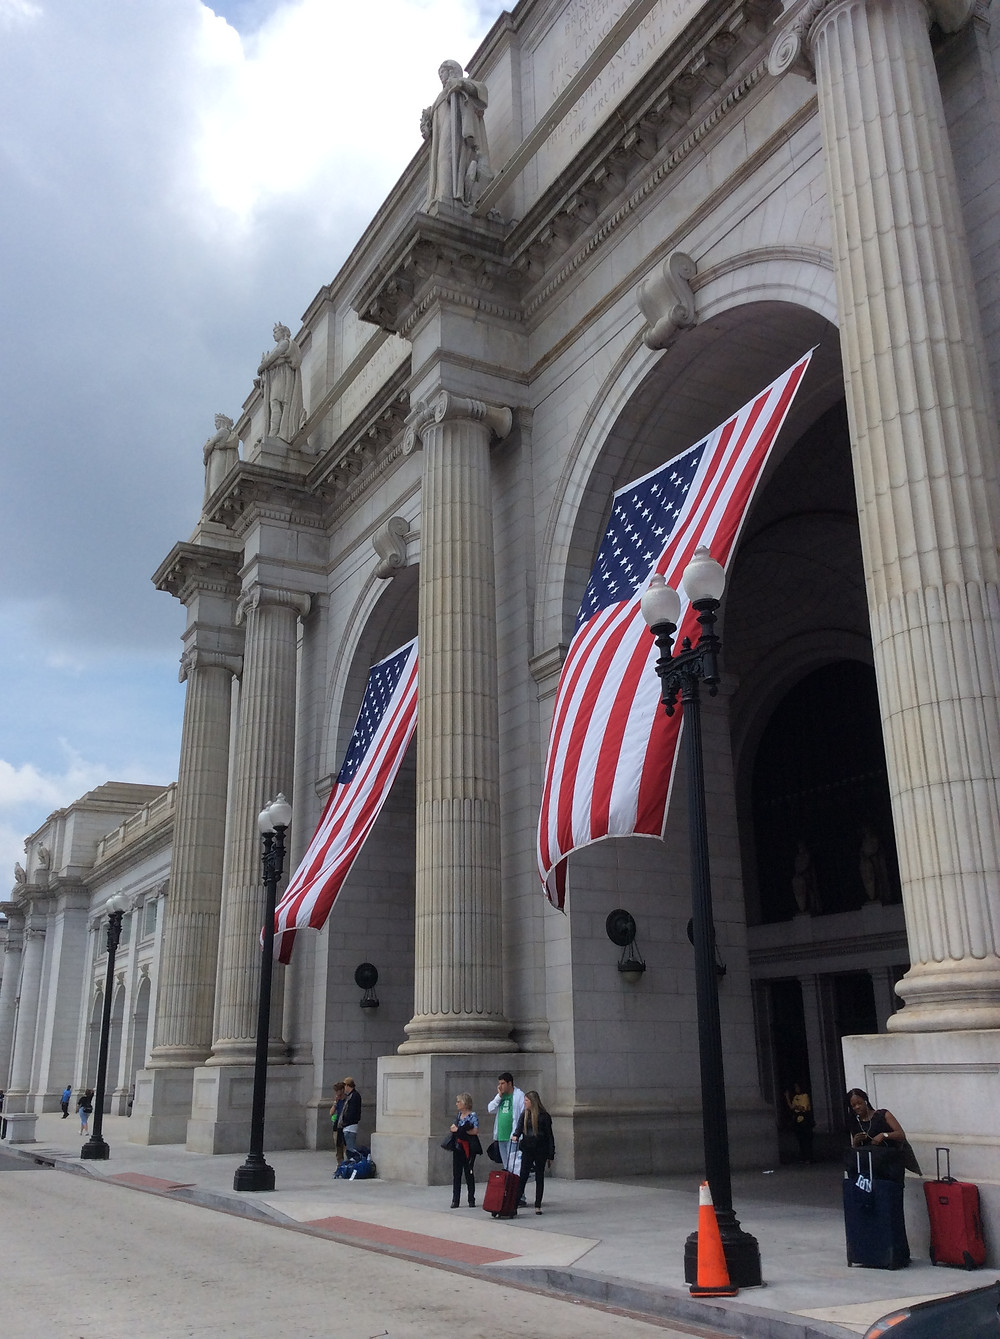 30Th Street Station, Philadelphia